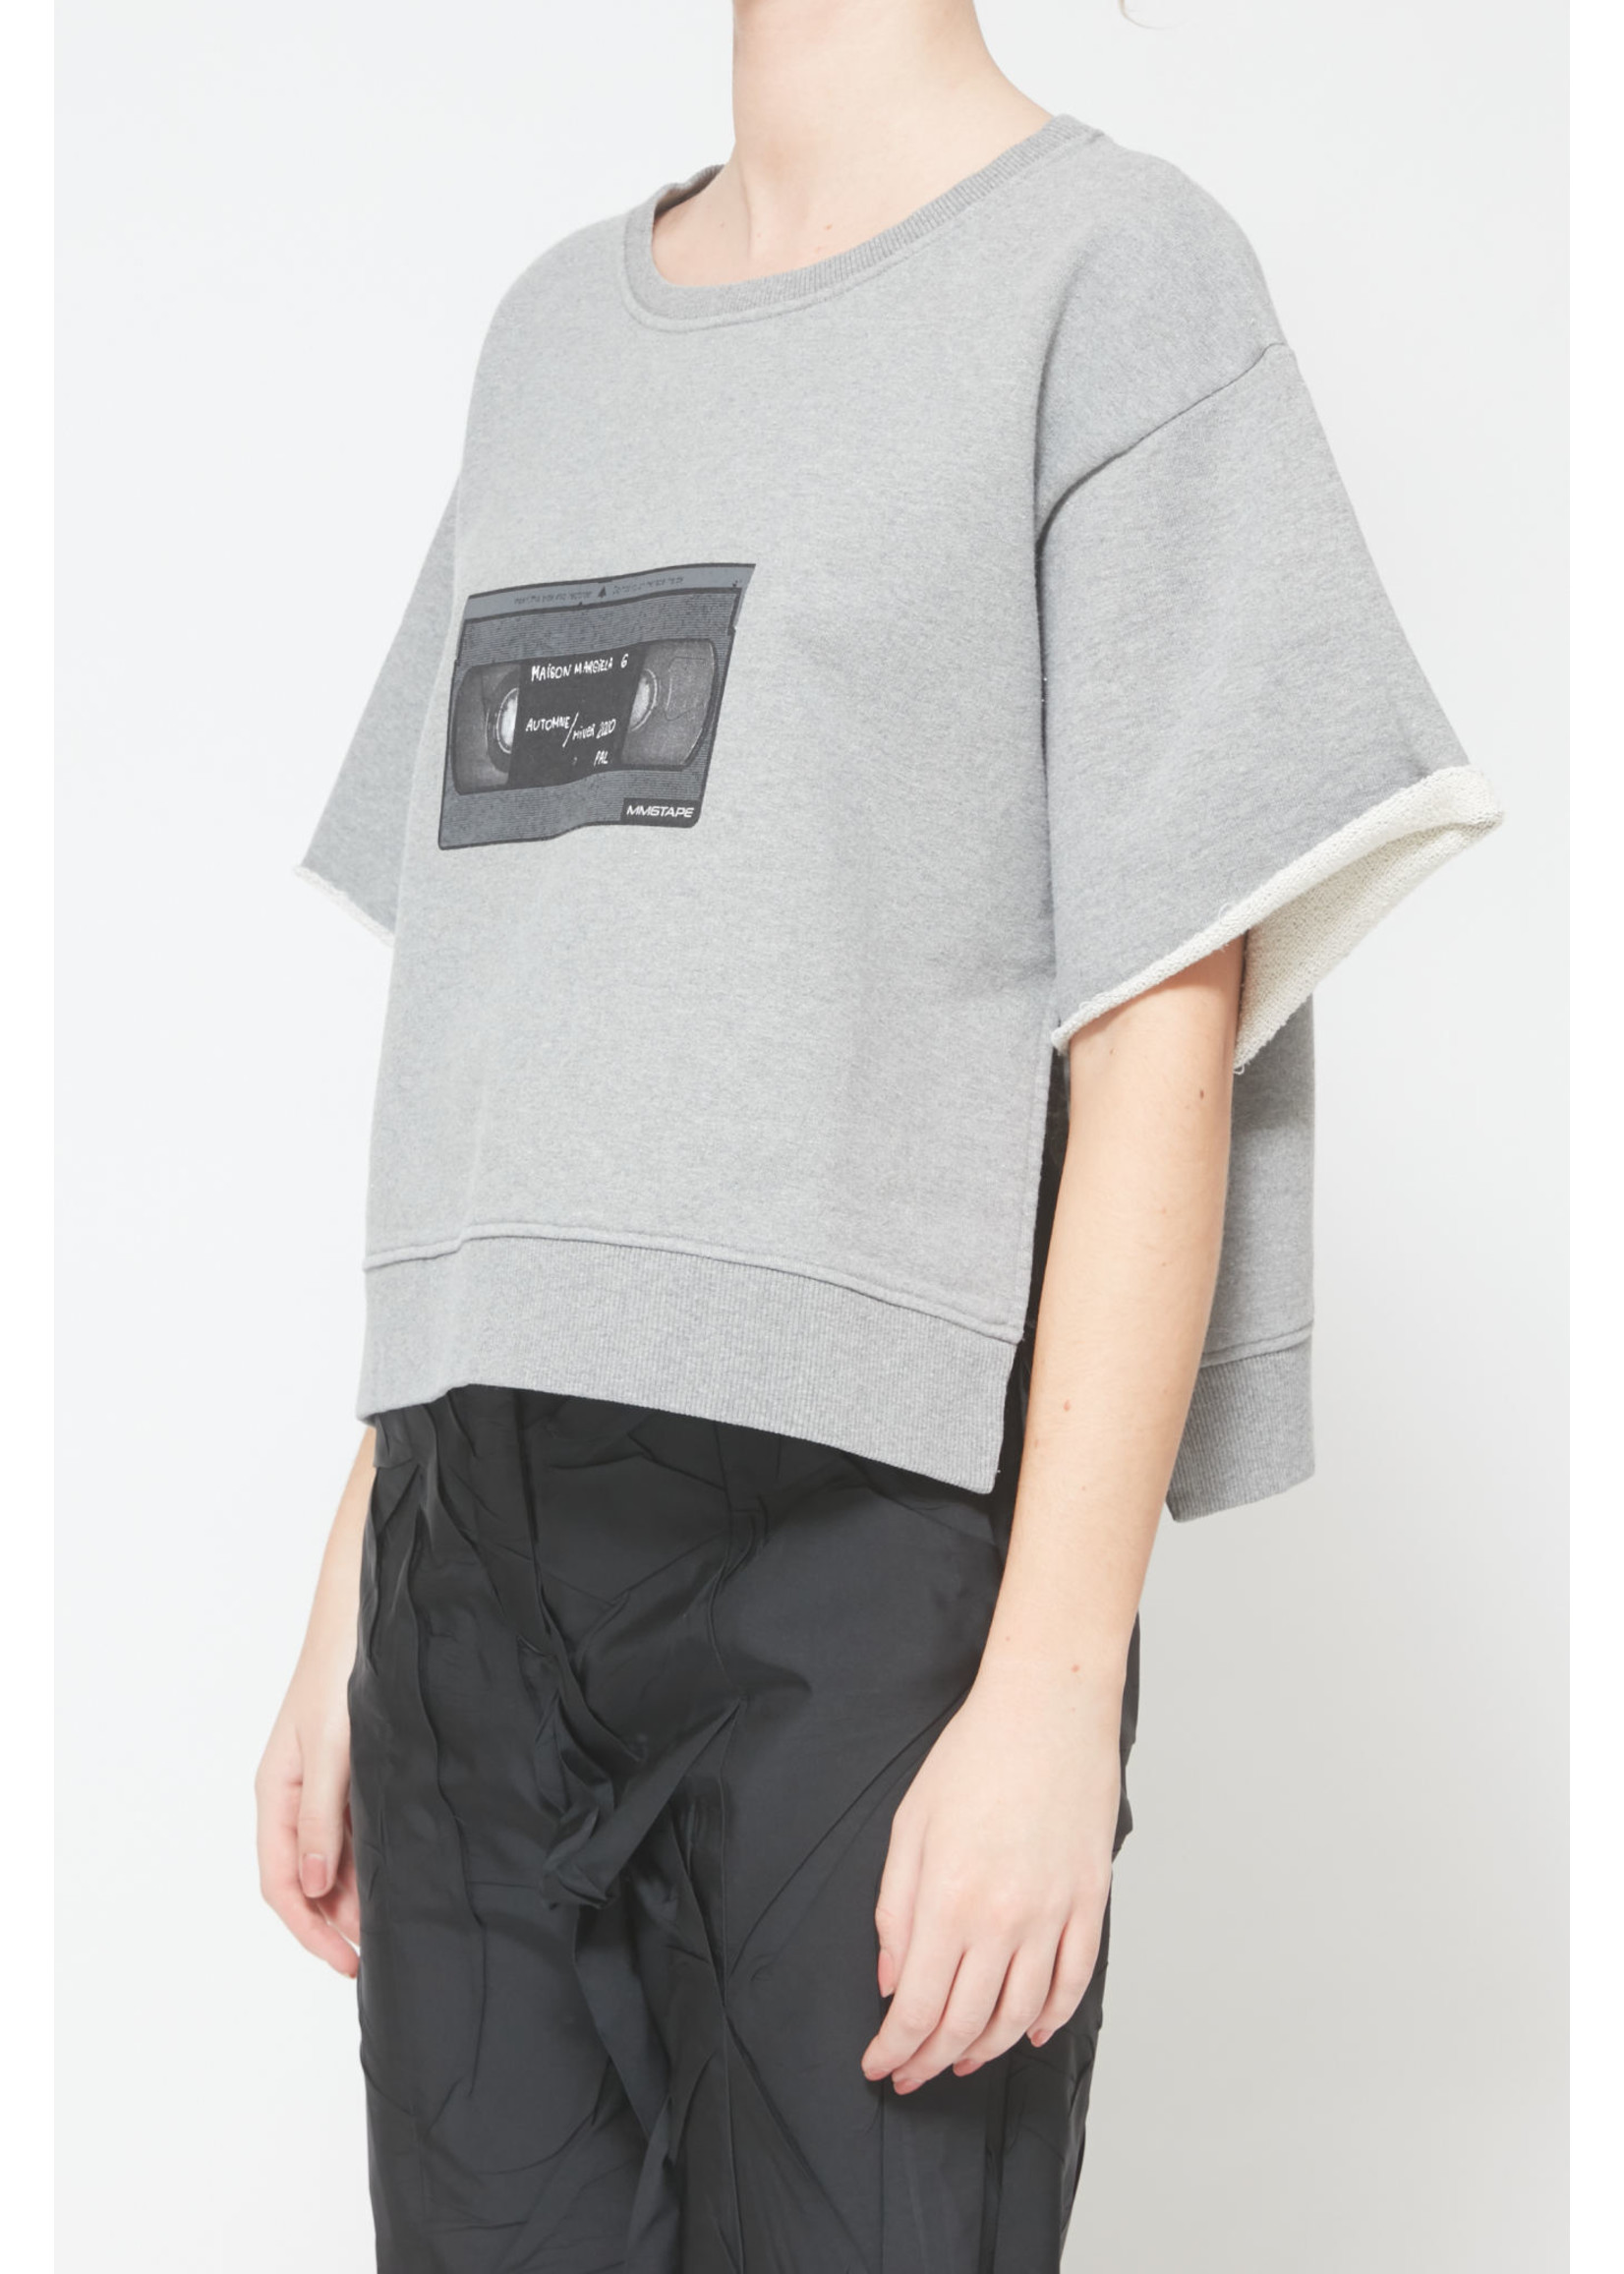 MM6 MAISON MARGIELA VHS Sweatshirt in Heather Grey